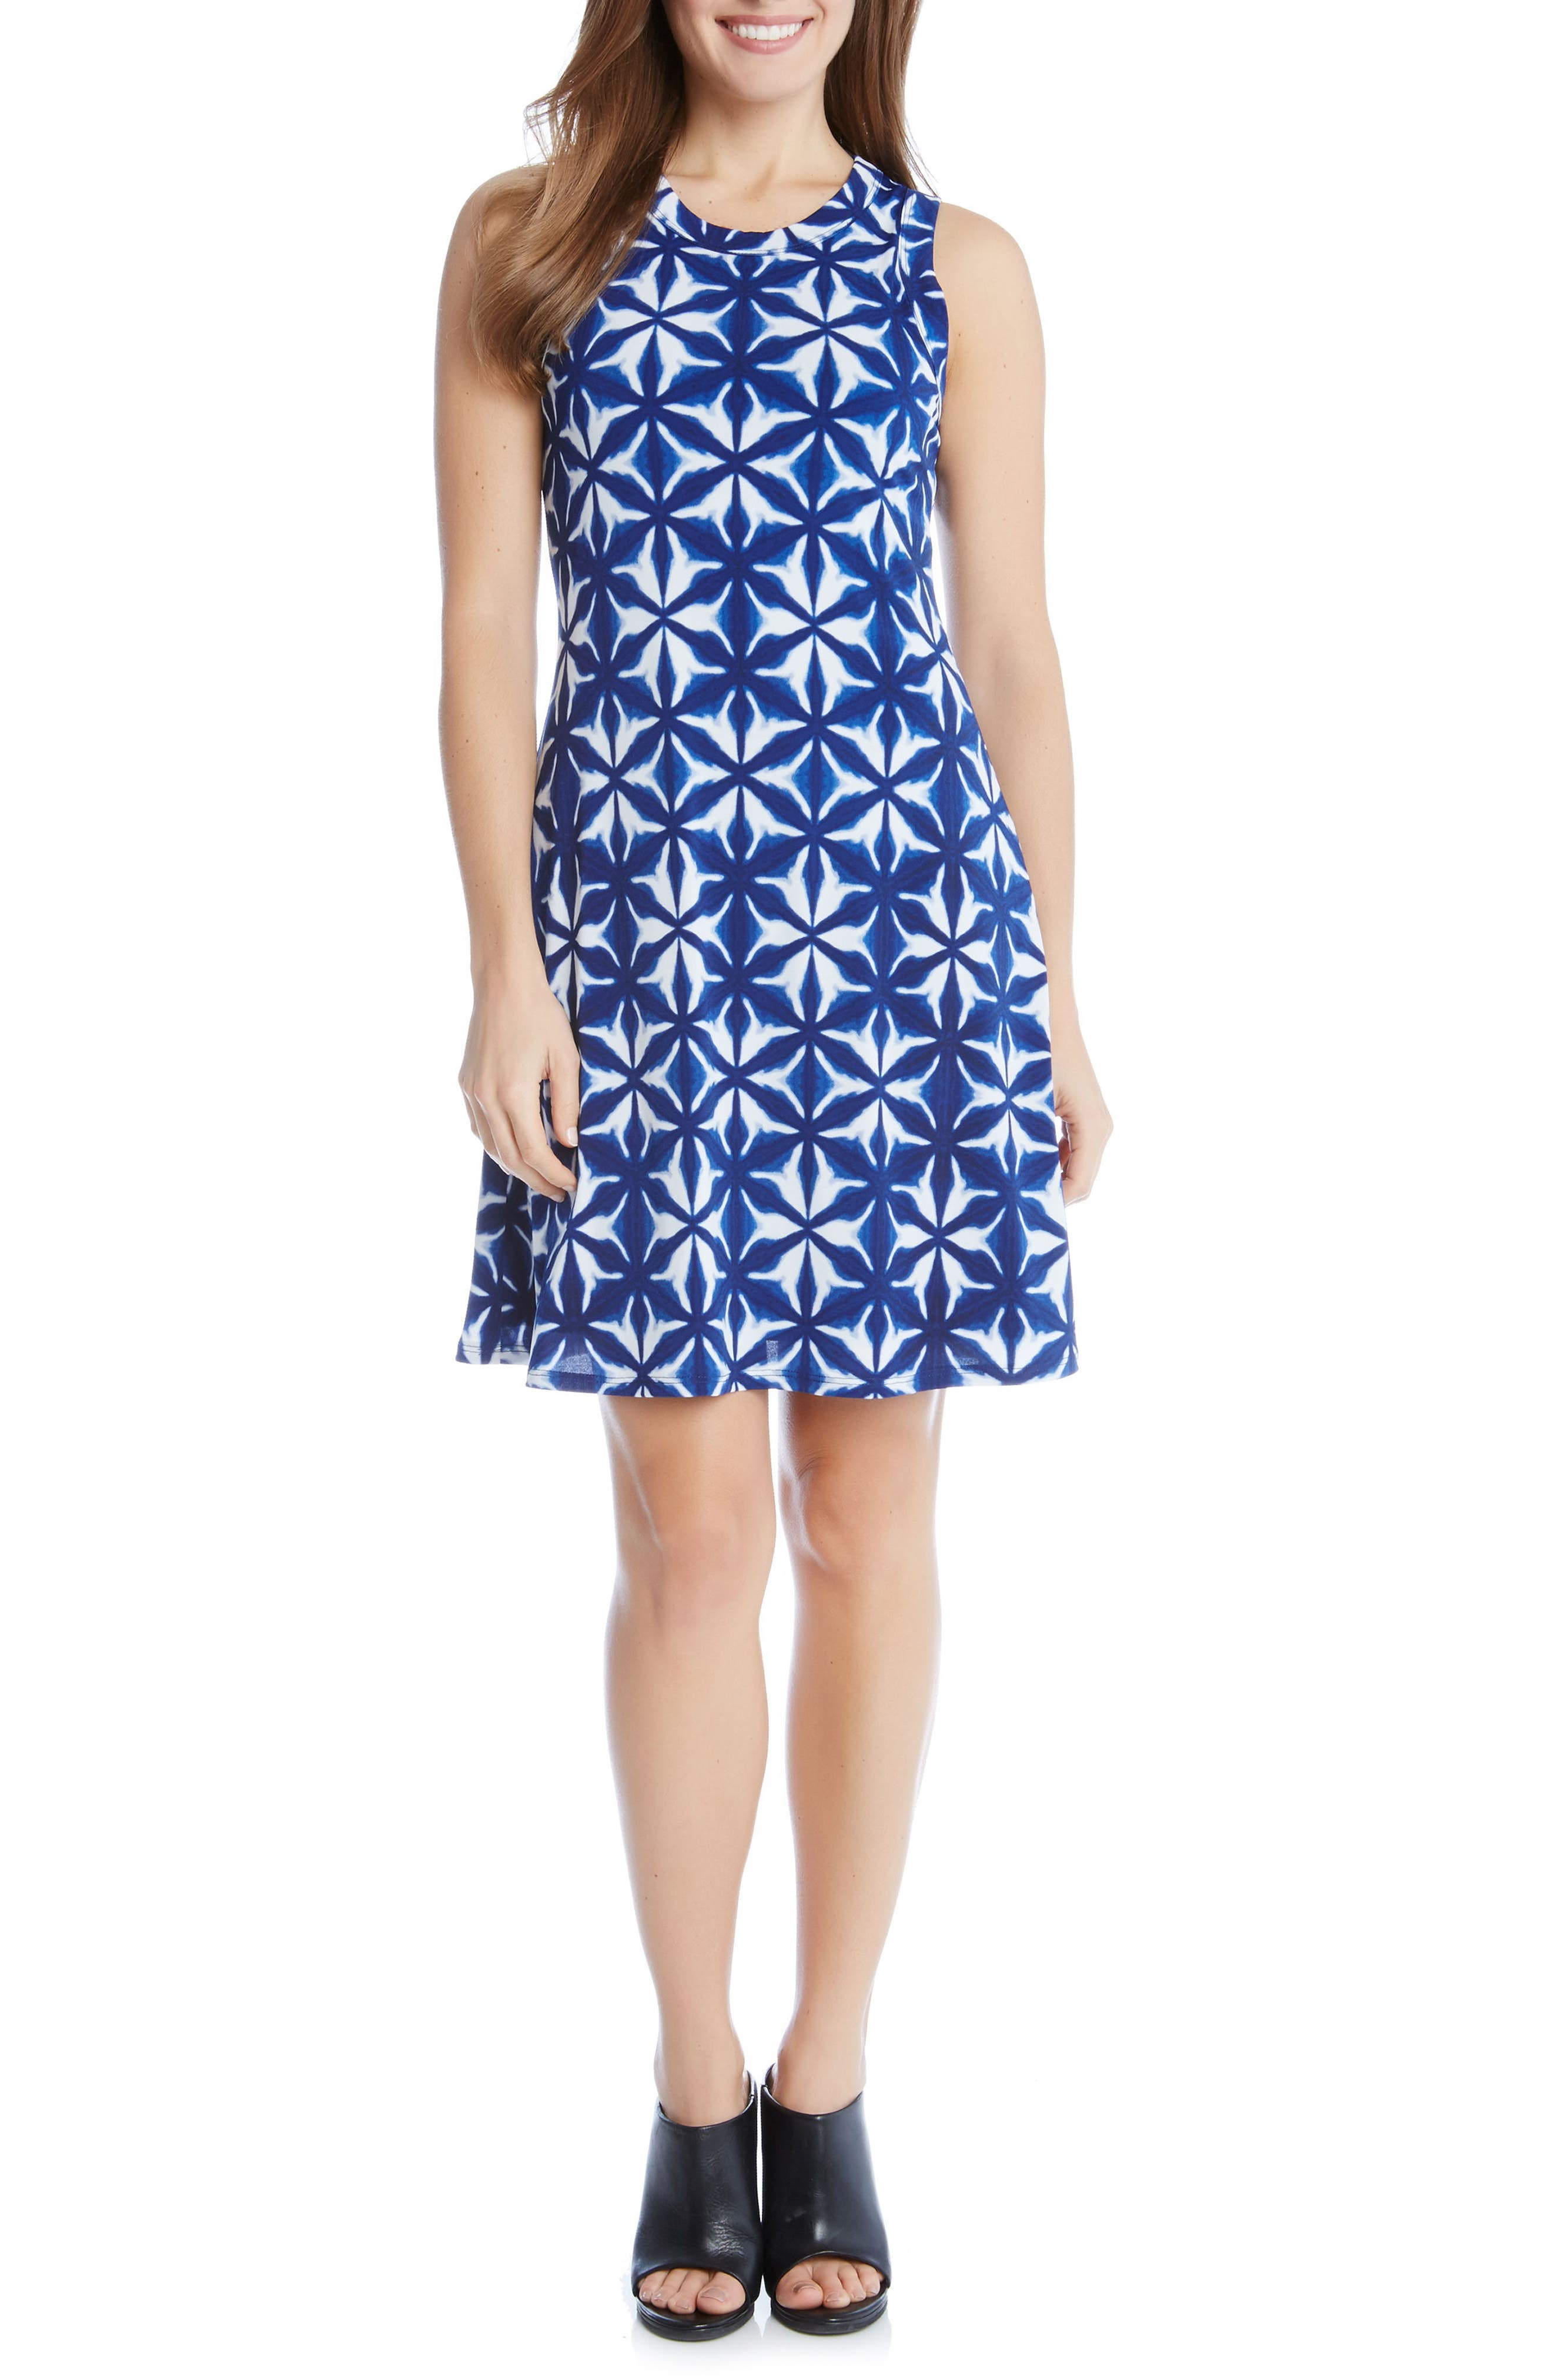 KAREN KANE, Kaleidoscope Tie Dye A-Line Dress, Main thumbnail 1, color, 460